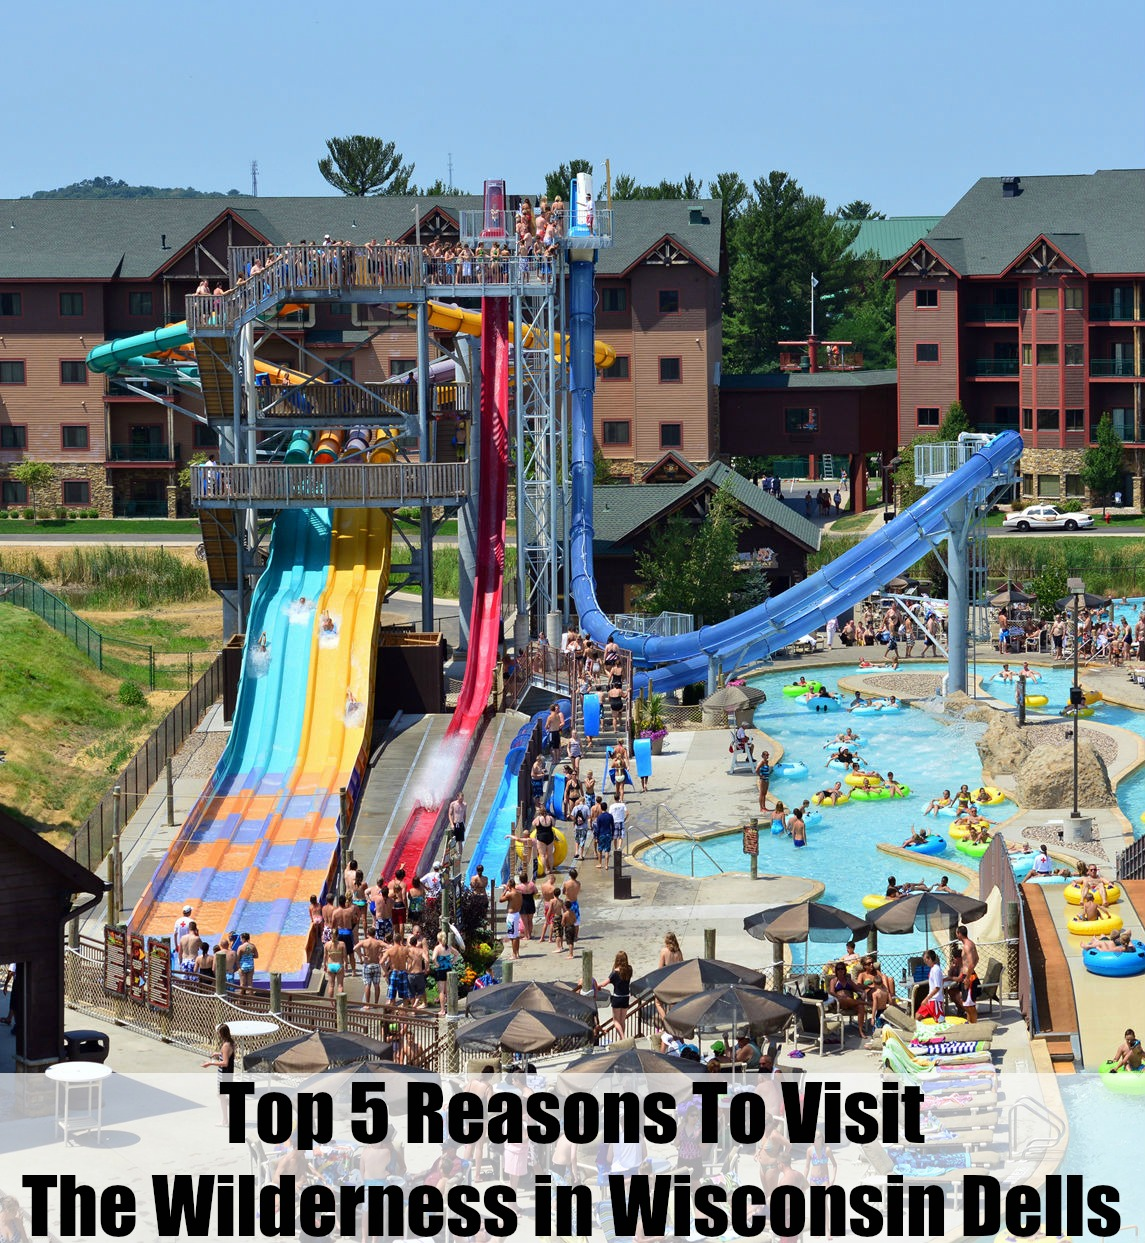 Wisconsin Dells Golf Wisconsin Dells Resort: Top 5 Reasons To Visit The Wilderness Resort In The